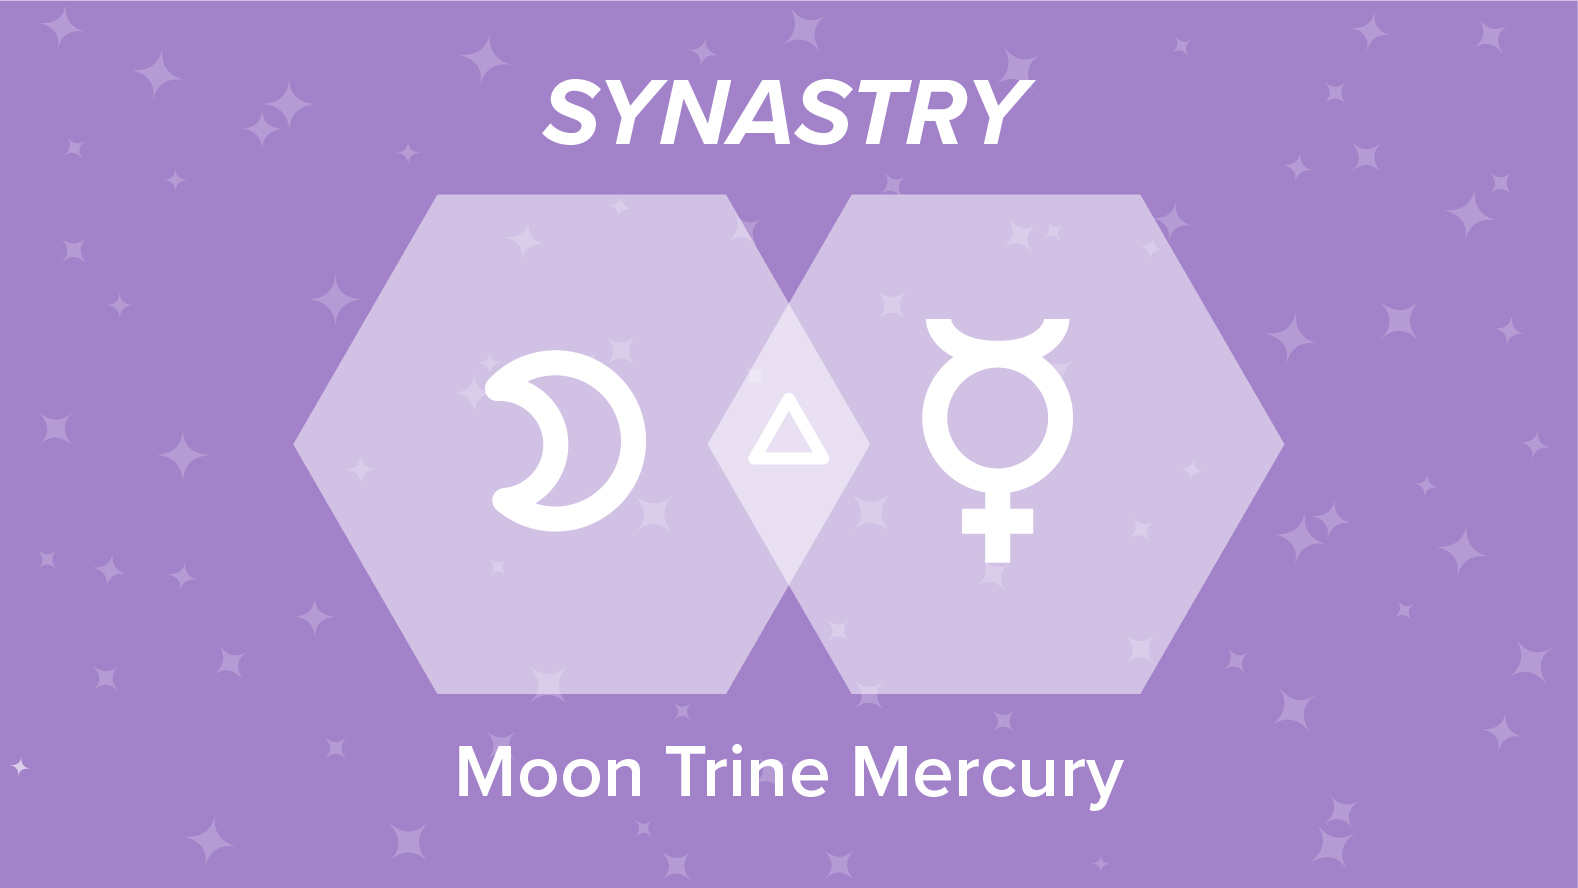 Moon Trine Mercury Synastry: Relationships and Friendships Explained